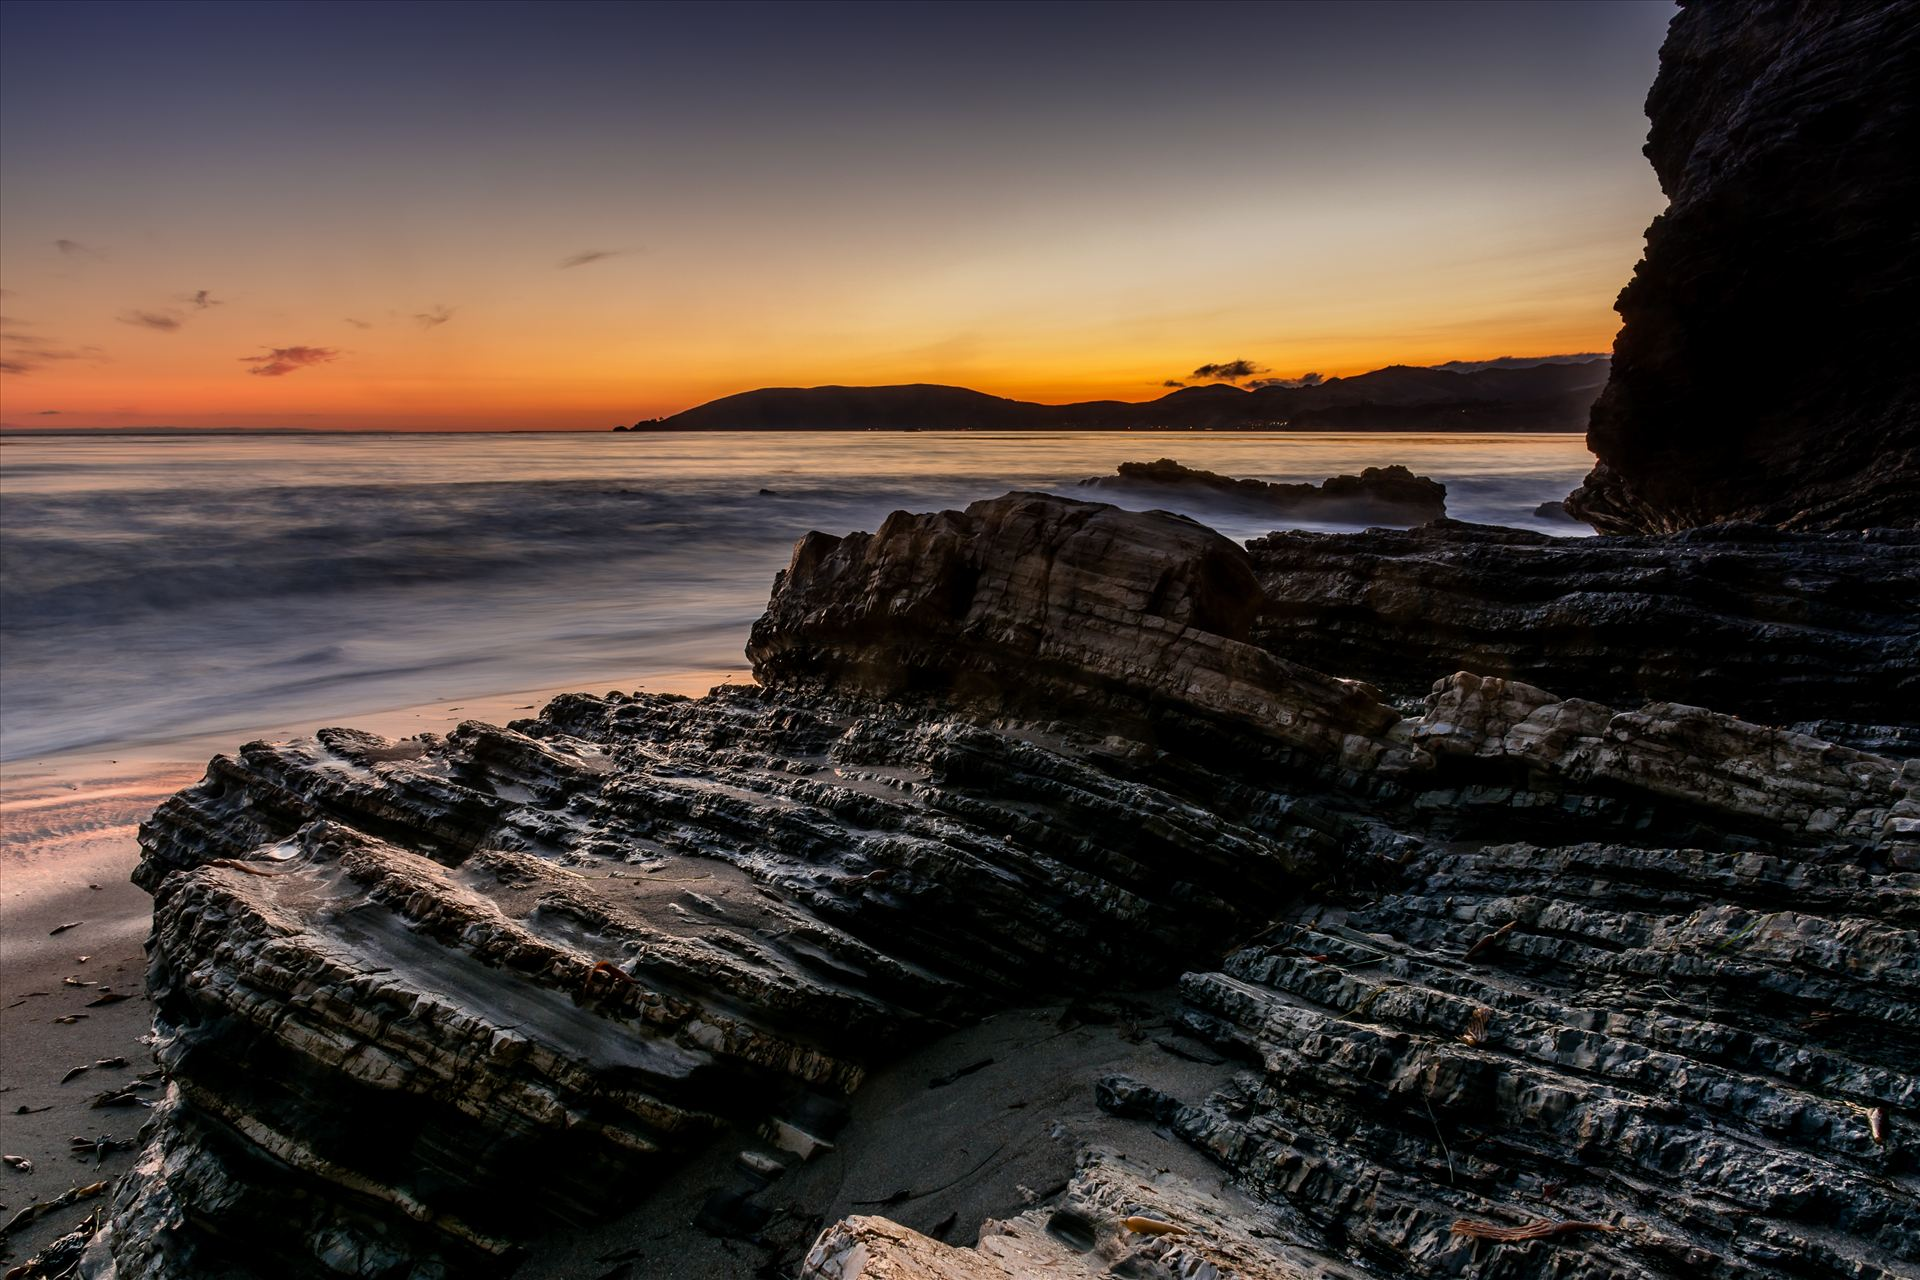 Avila in the Distance.jpg - Spyglass cliffs at sunset with Avila Beach in the distance by Sarah Williams